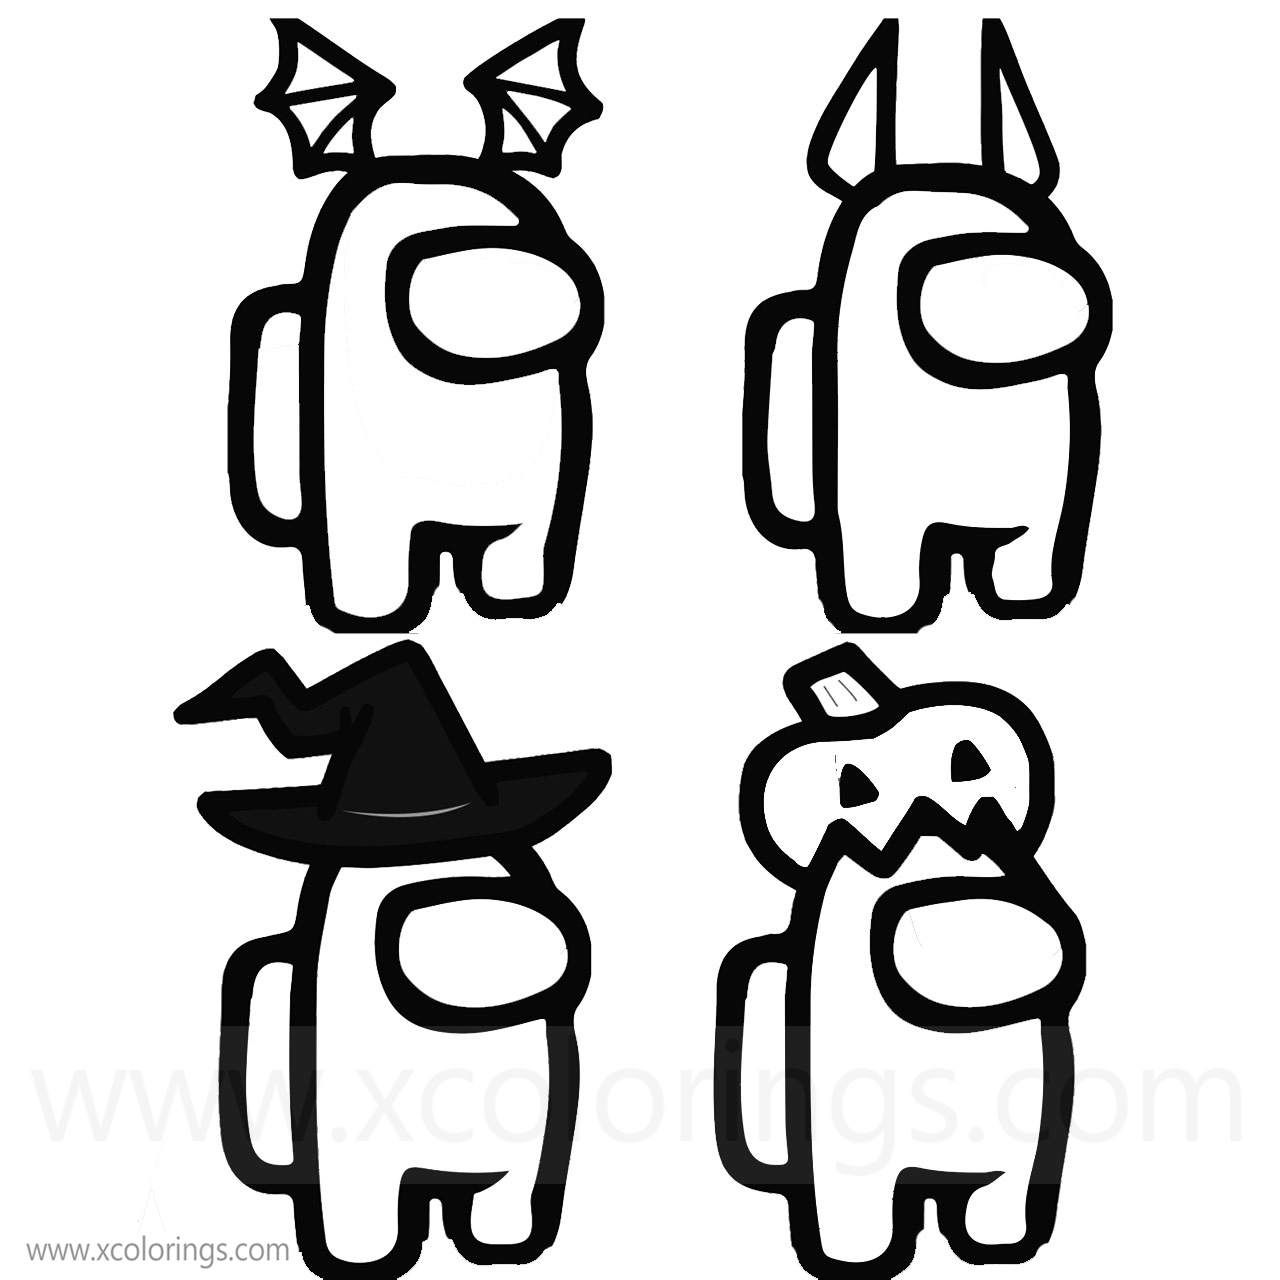 Among Us Coloring Pages Halloween Costumes Skins Hats In 2020 Coloring Pages Halloween Costumes Halloween Costume Hats